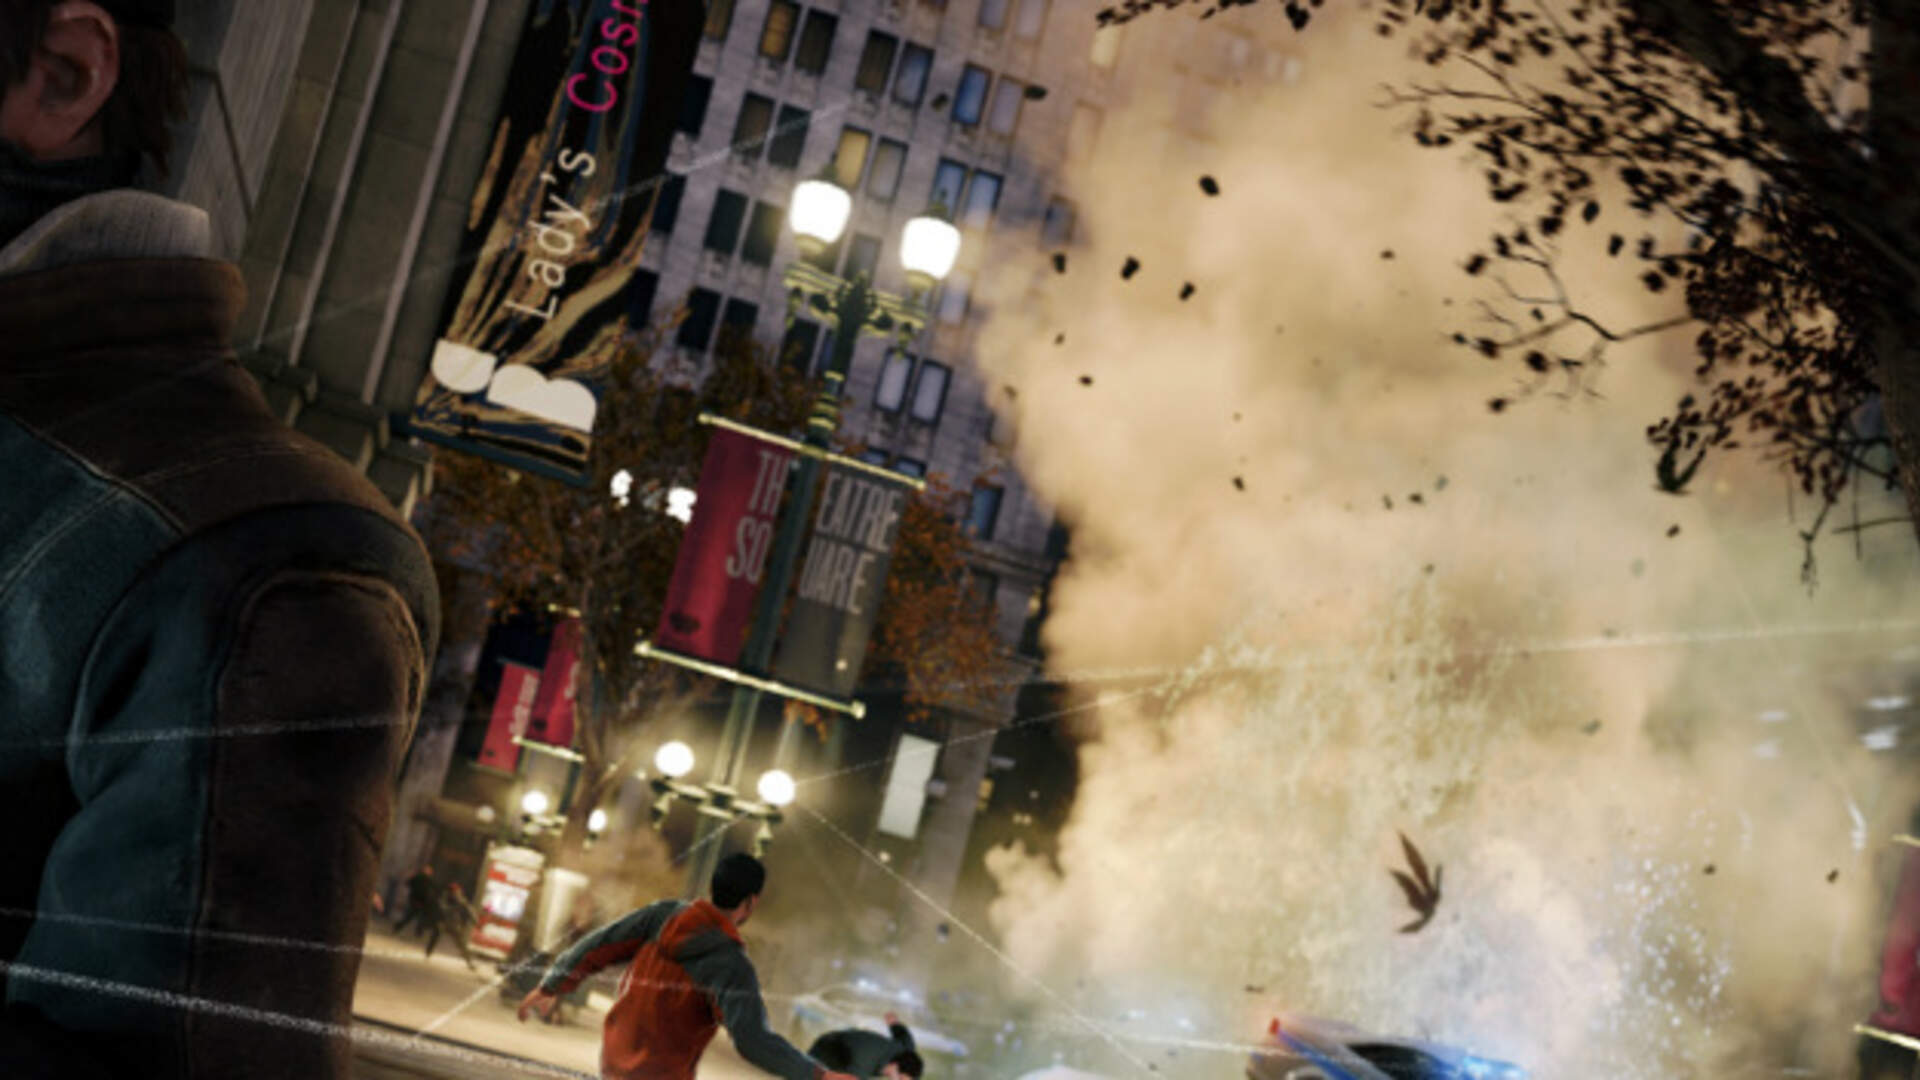 Watch Dogs: Finding Morality in Useless Information